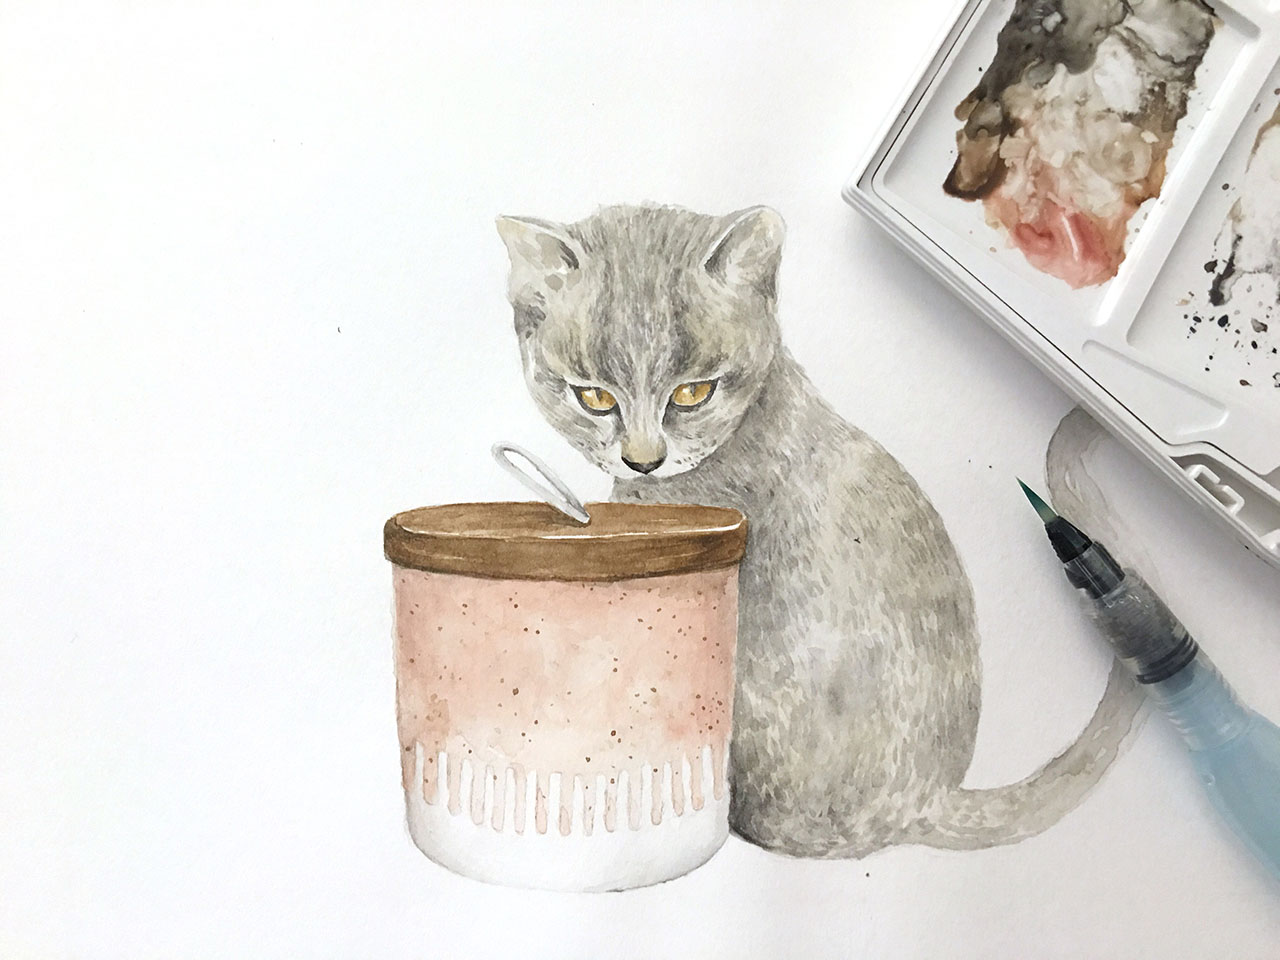 First practice painting of the day — a kitten with a ceramic pot